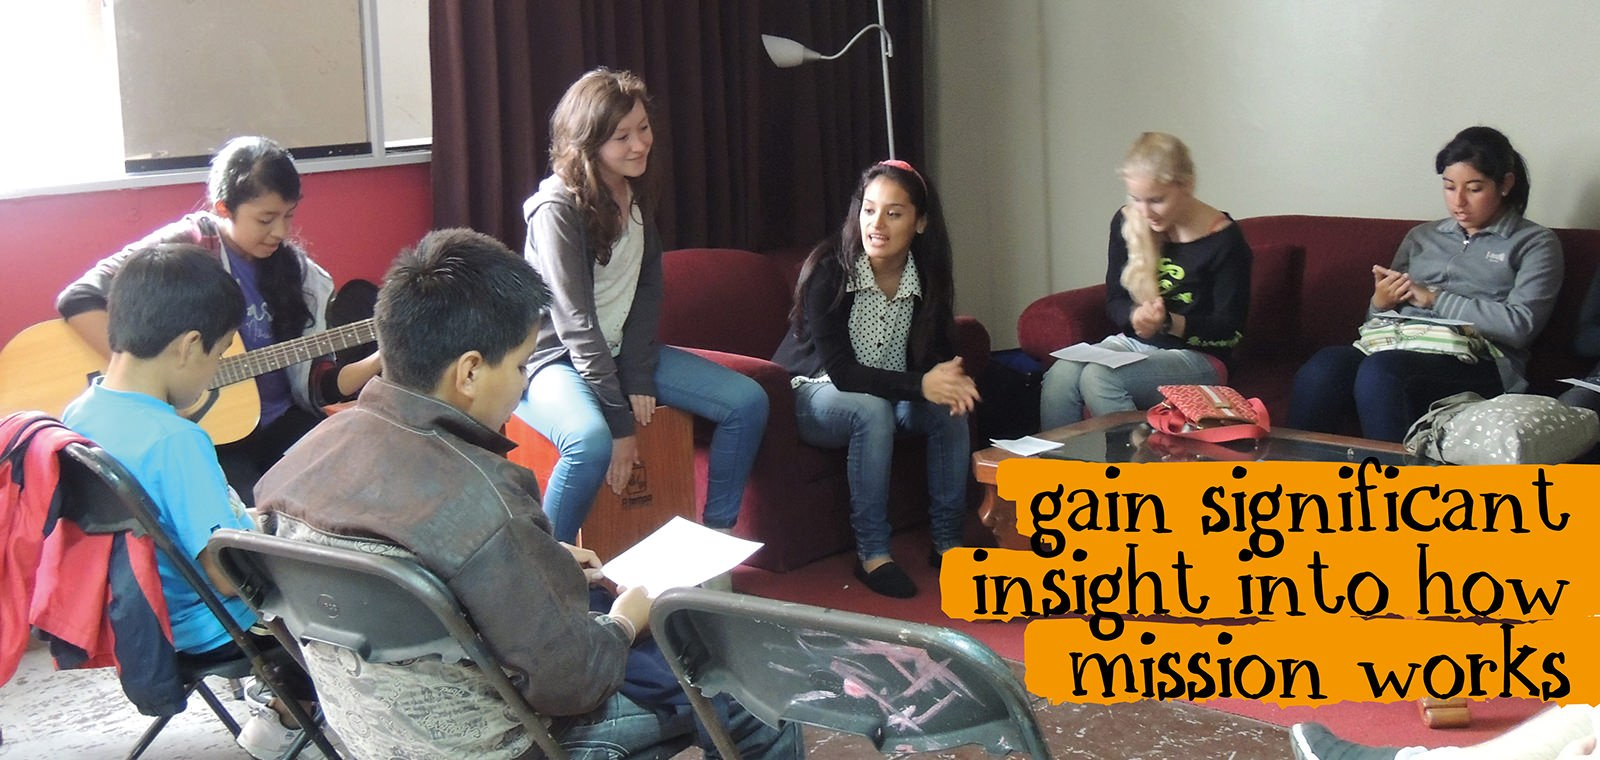 gain significant insight into how mission works